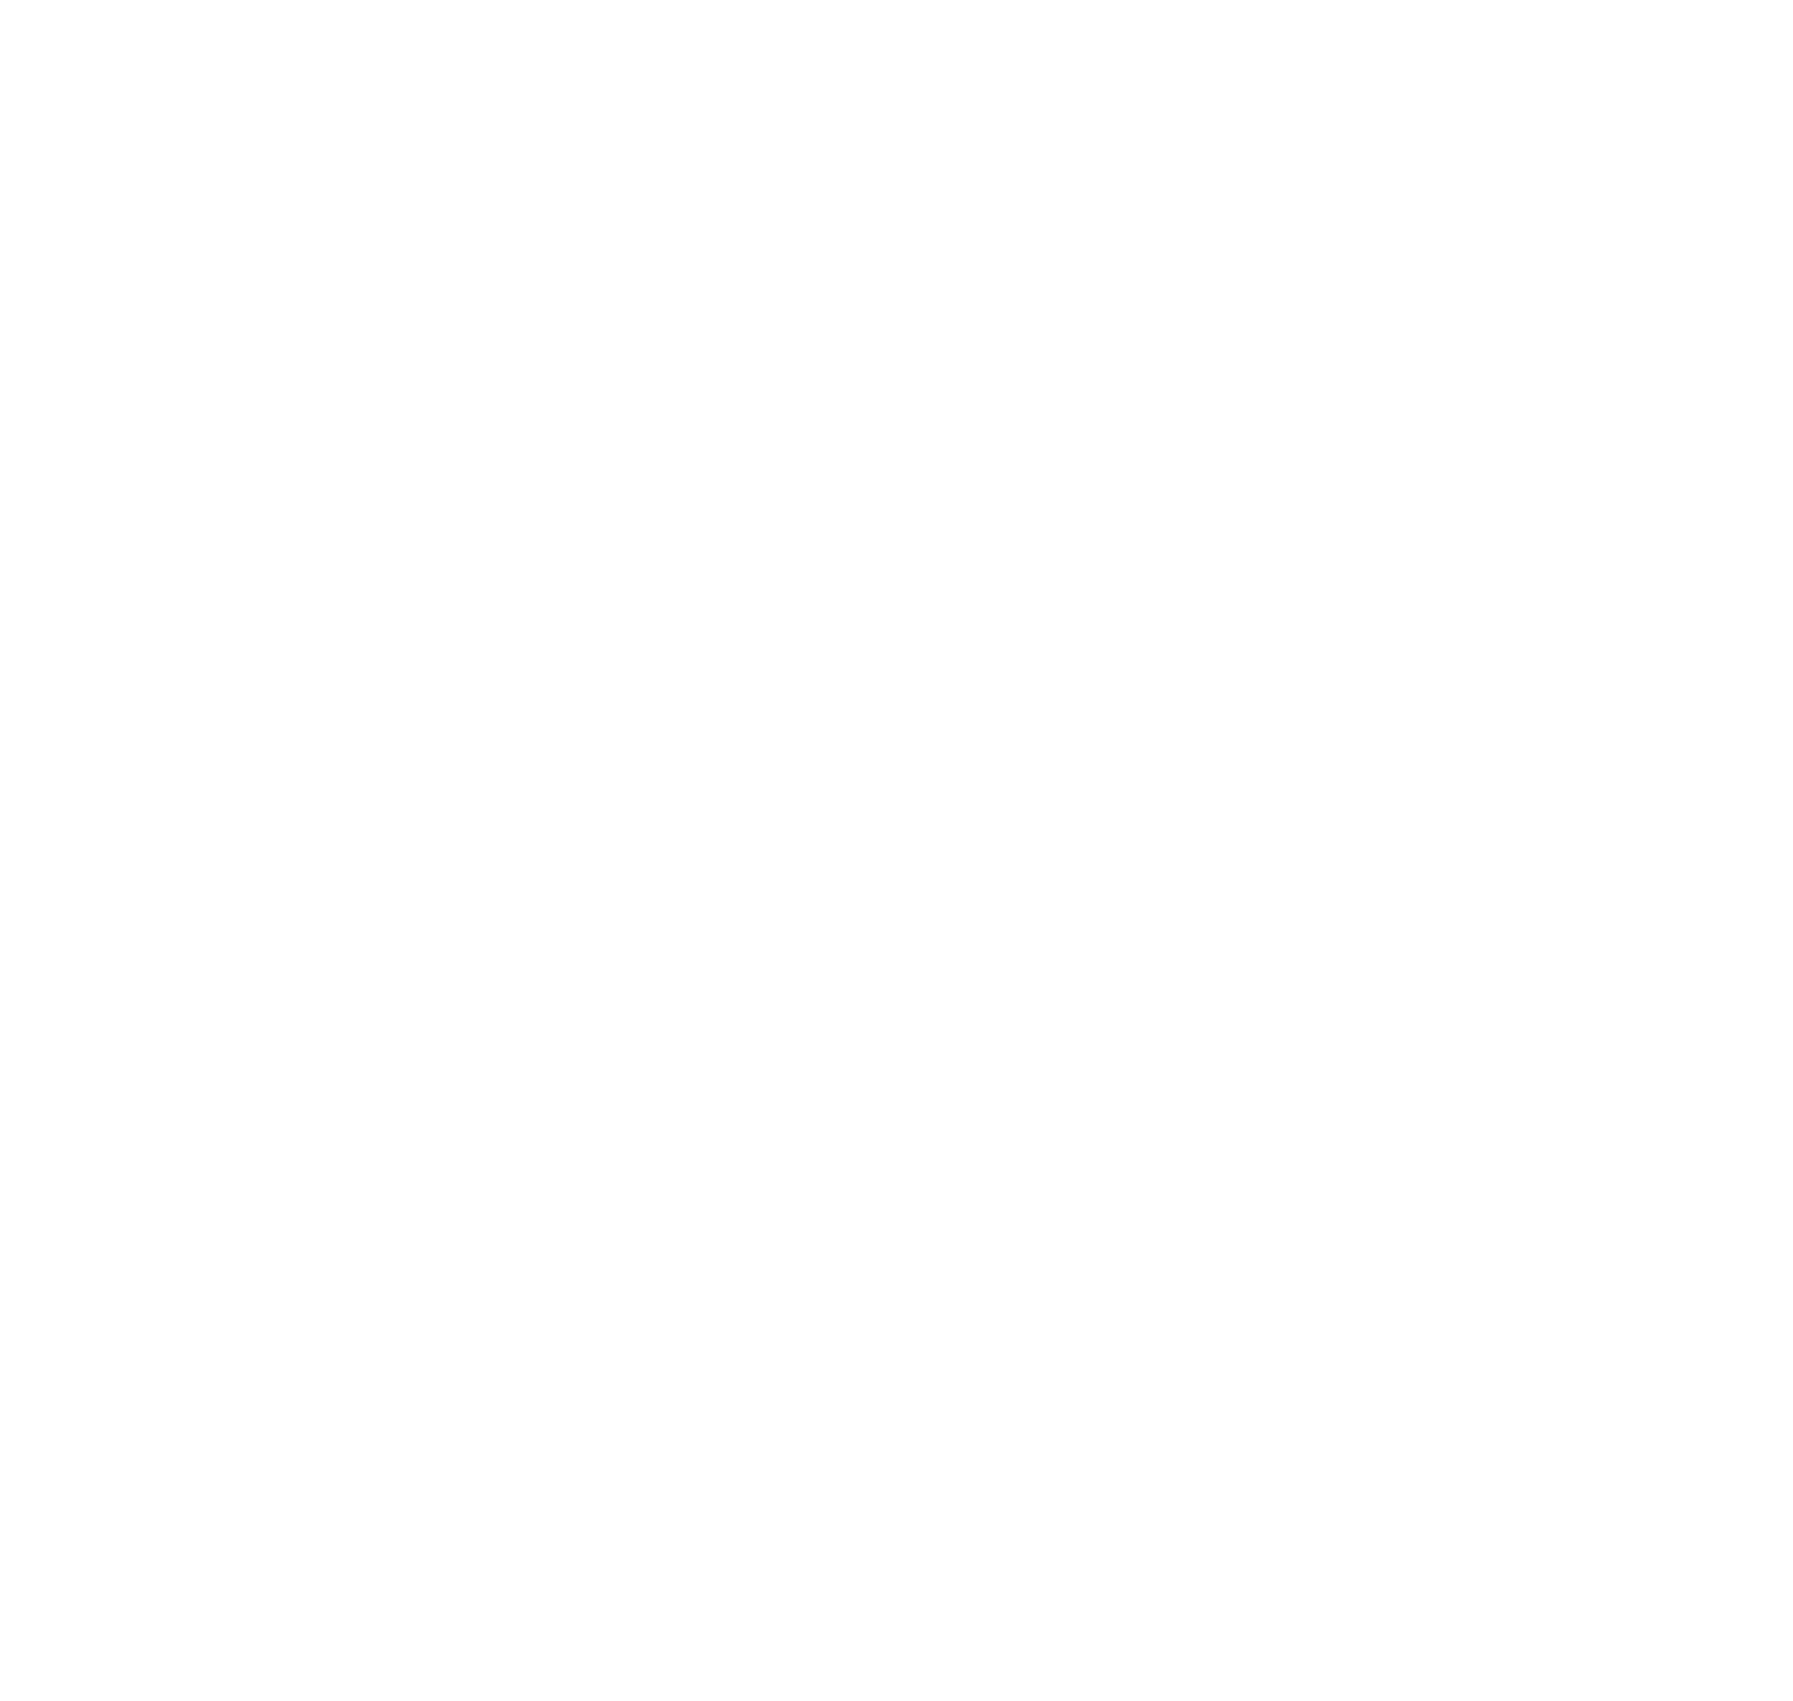 Ormskirk and District